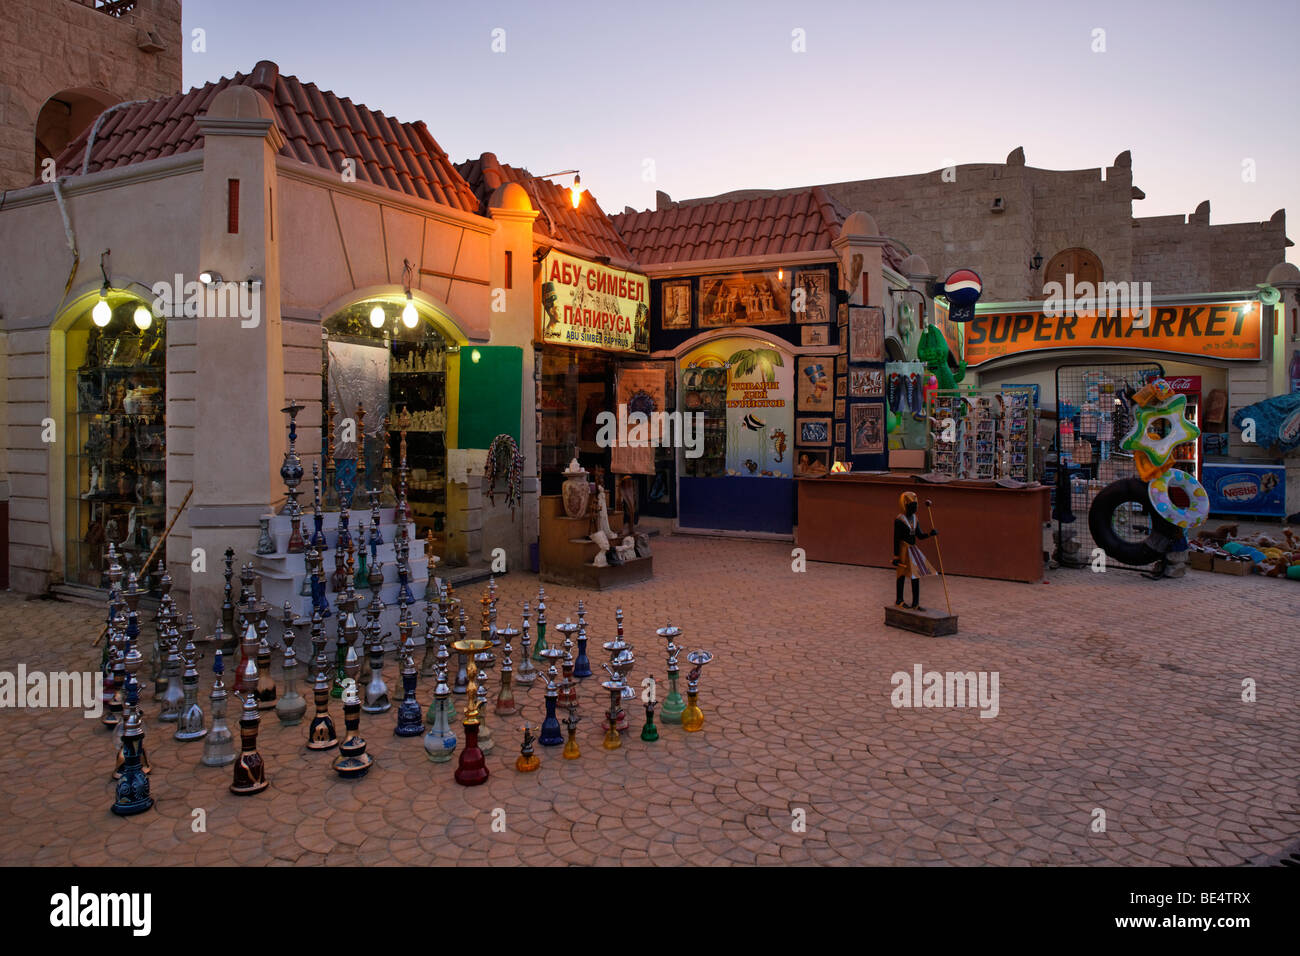 Souvenir shop, water pipes, shishas, illuminated, evening, Yussuf Afifi road, Hurghada, Egypt, Red Sea, Africa - Stock Image